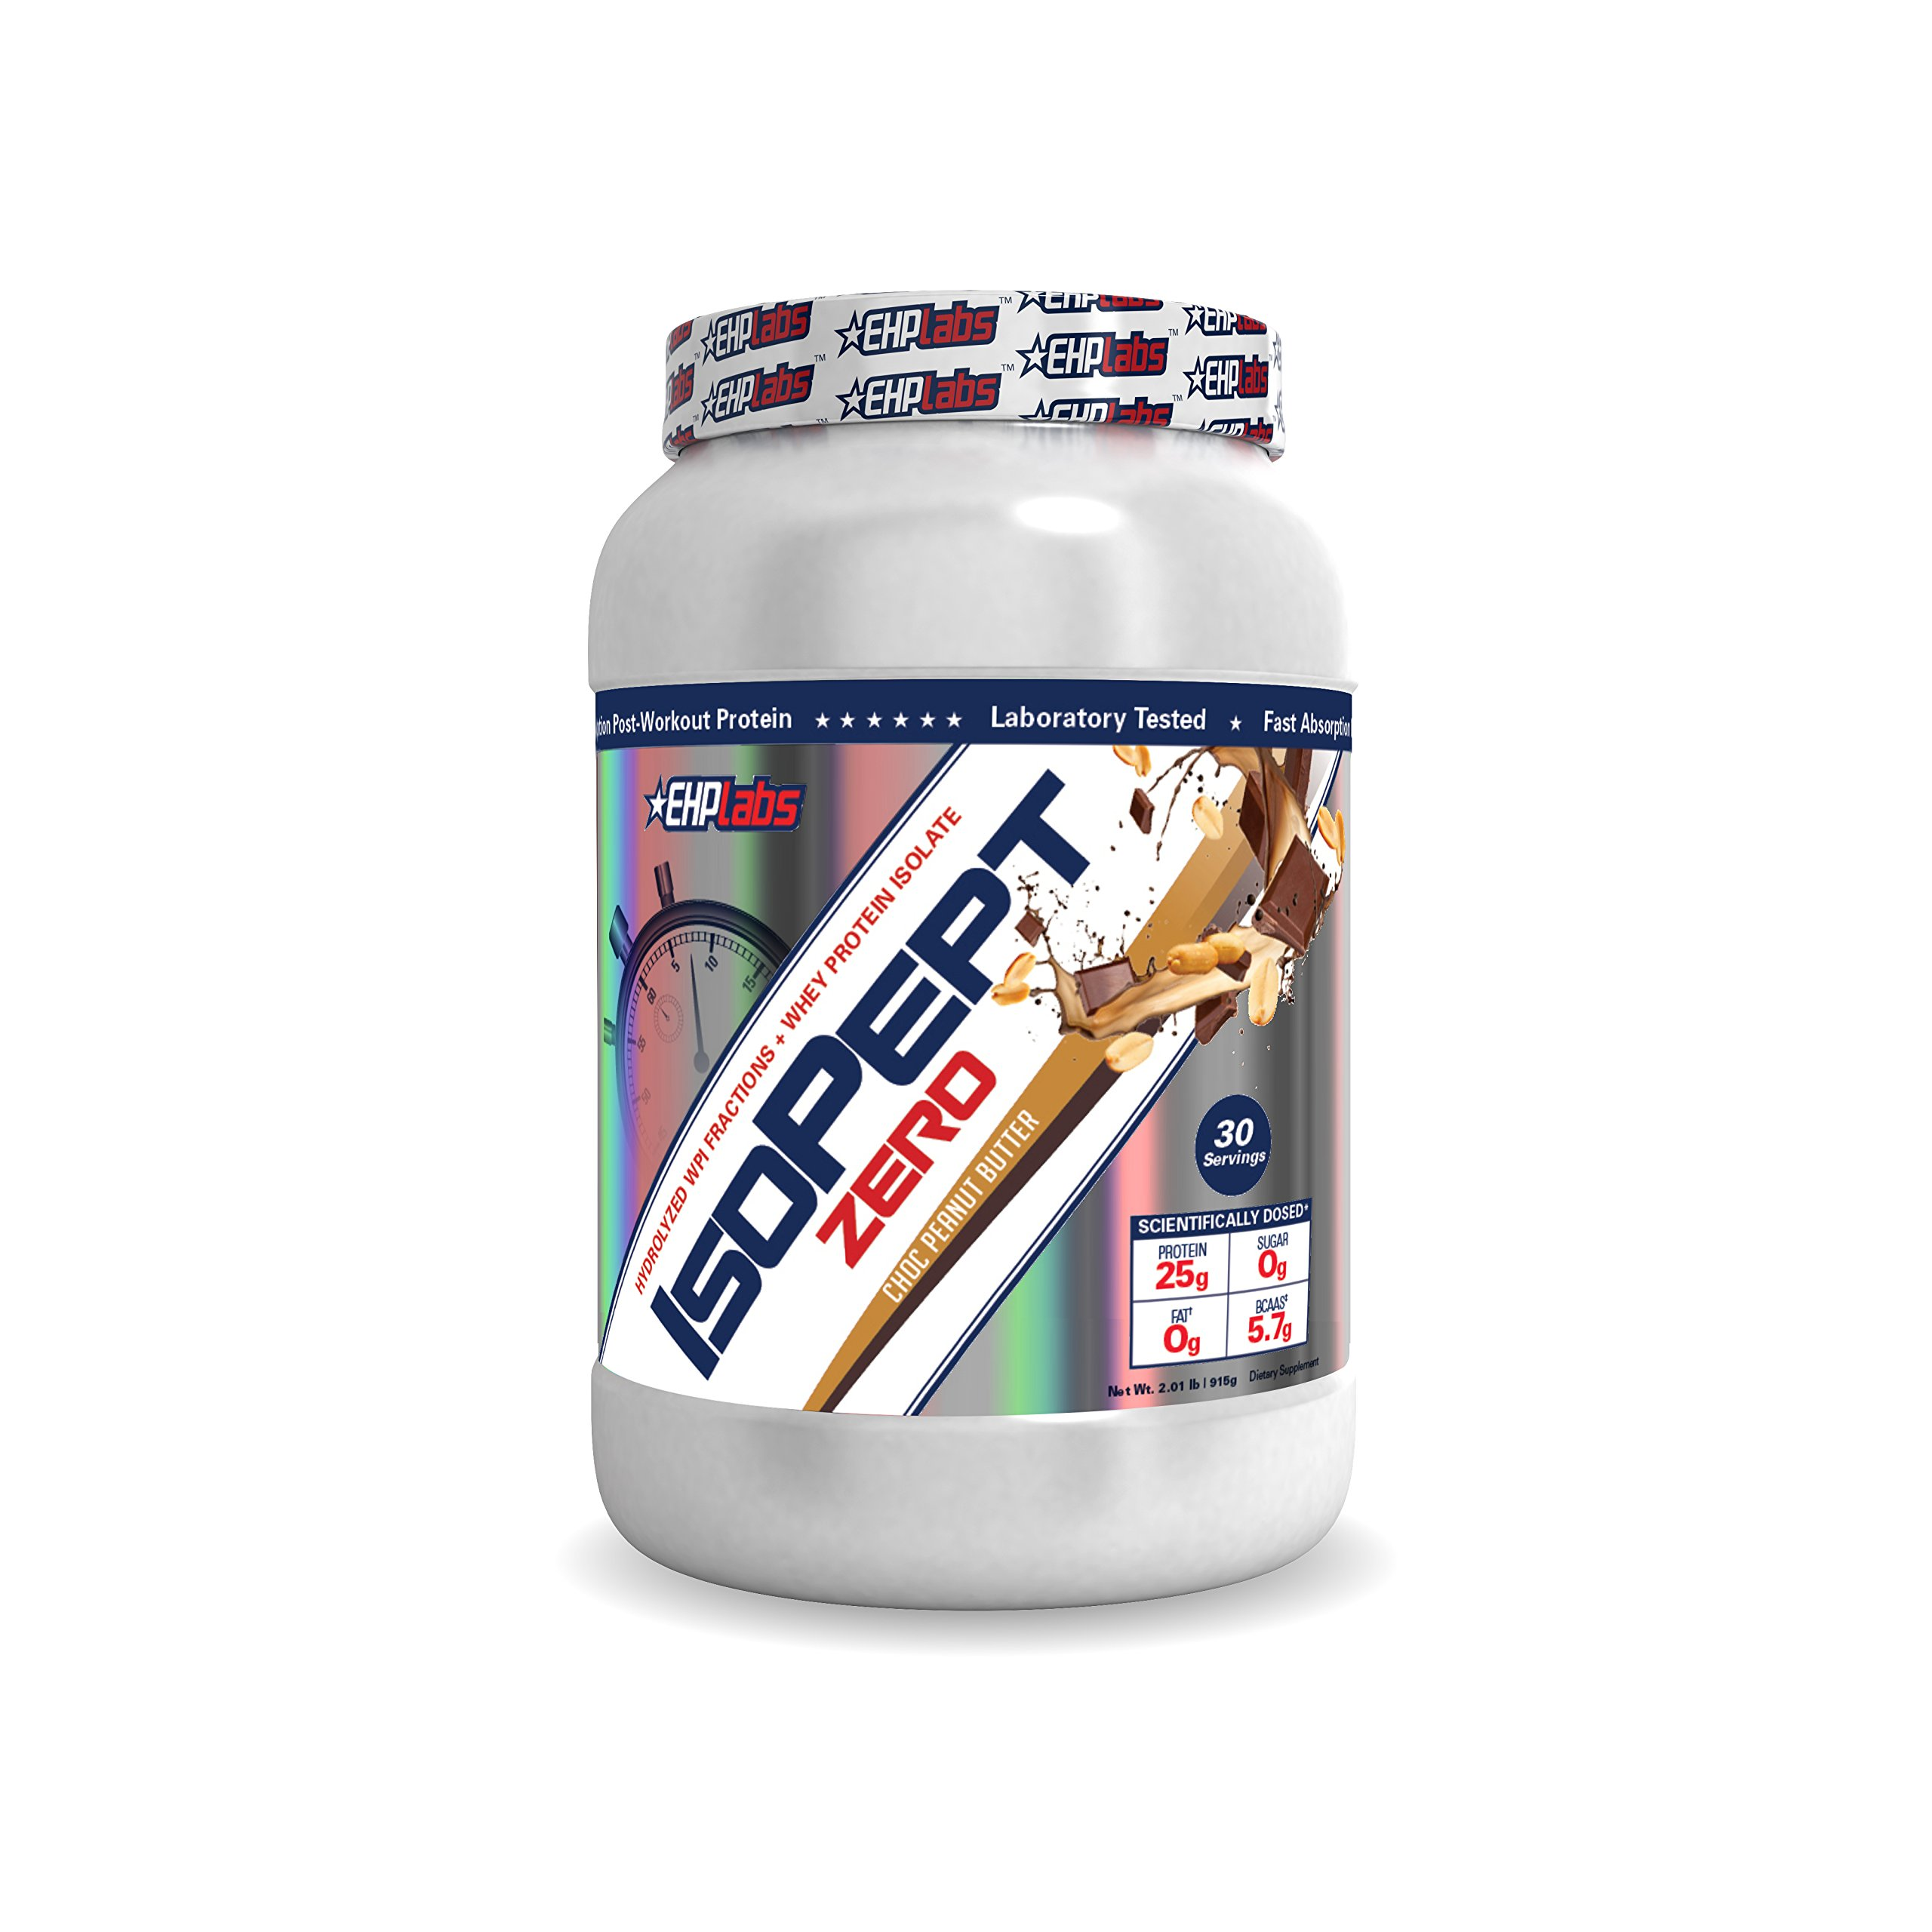 EHP Labs IsoPept Zero Chocolate Peanut Butter (2lbs) Hydrolized WPI Fractions + Whey Protein Isolate, 25g of Protein Per Serving, 0 Sugar, 0 Fat, 5.7g of BCAAs - 30 Servings by EHP Labs